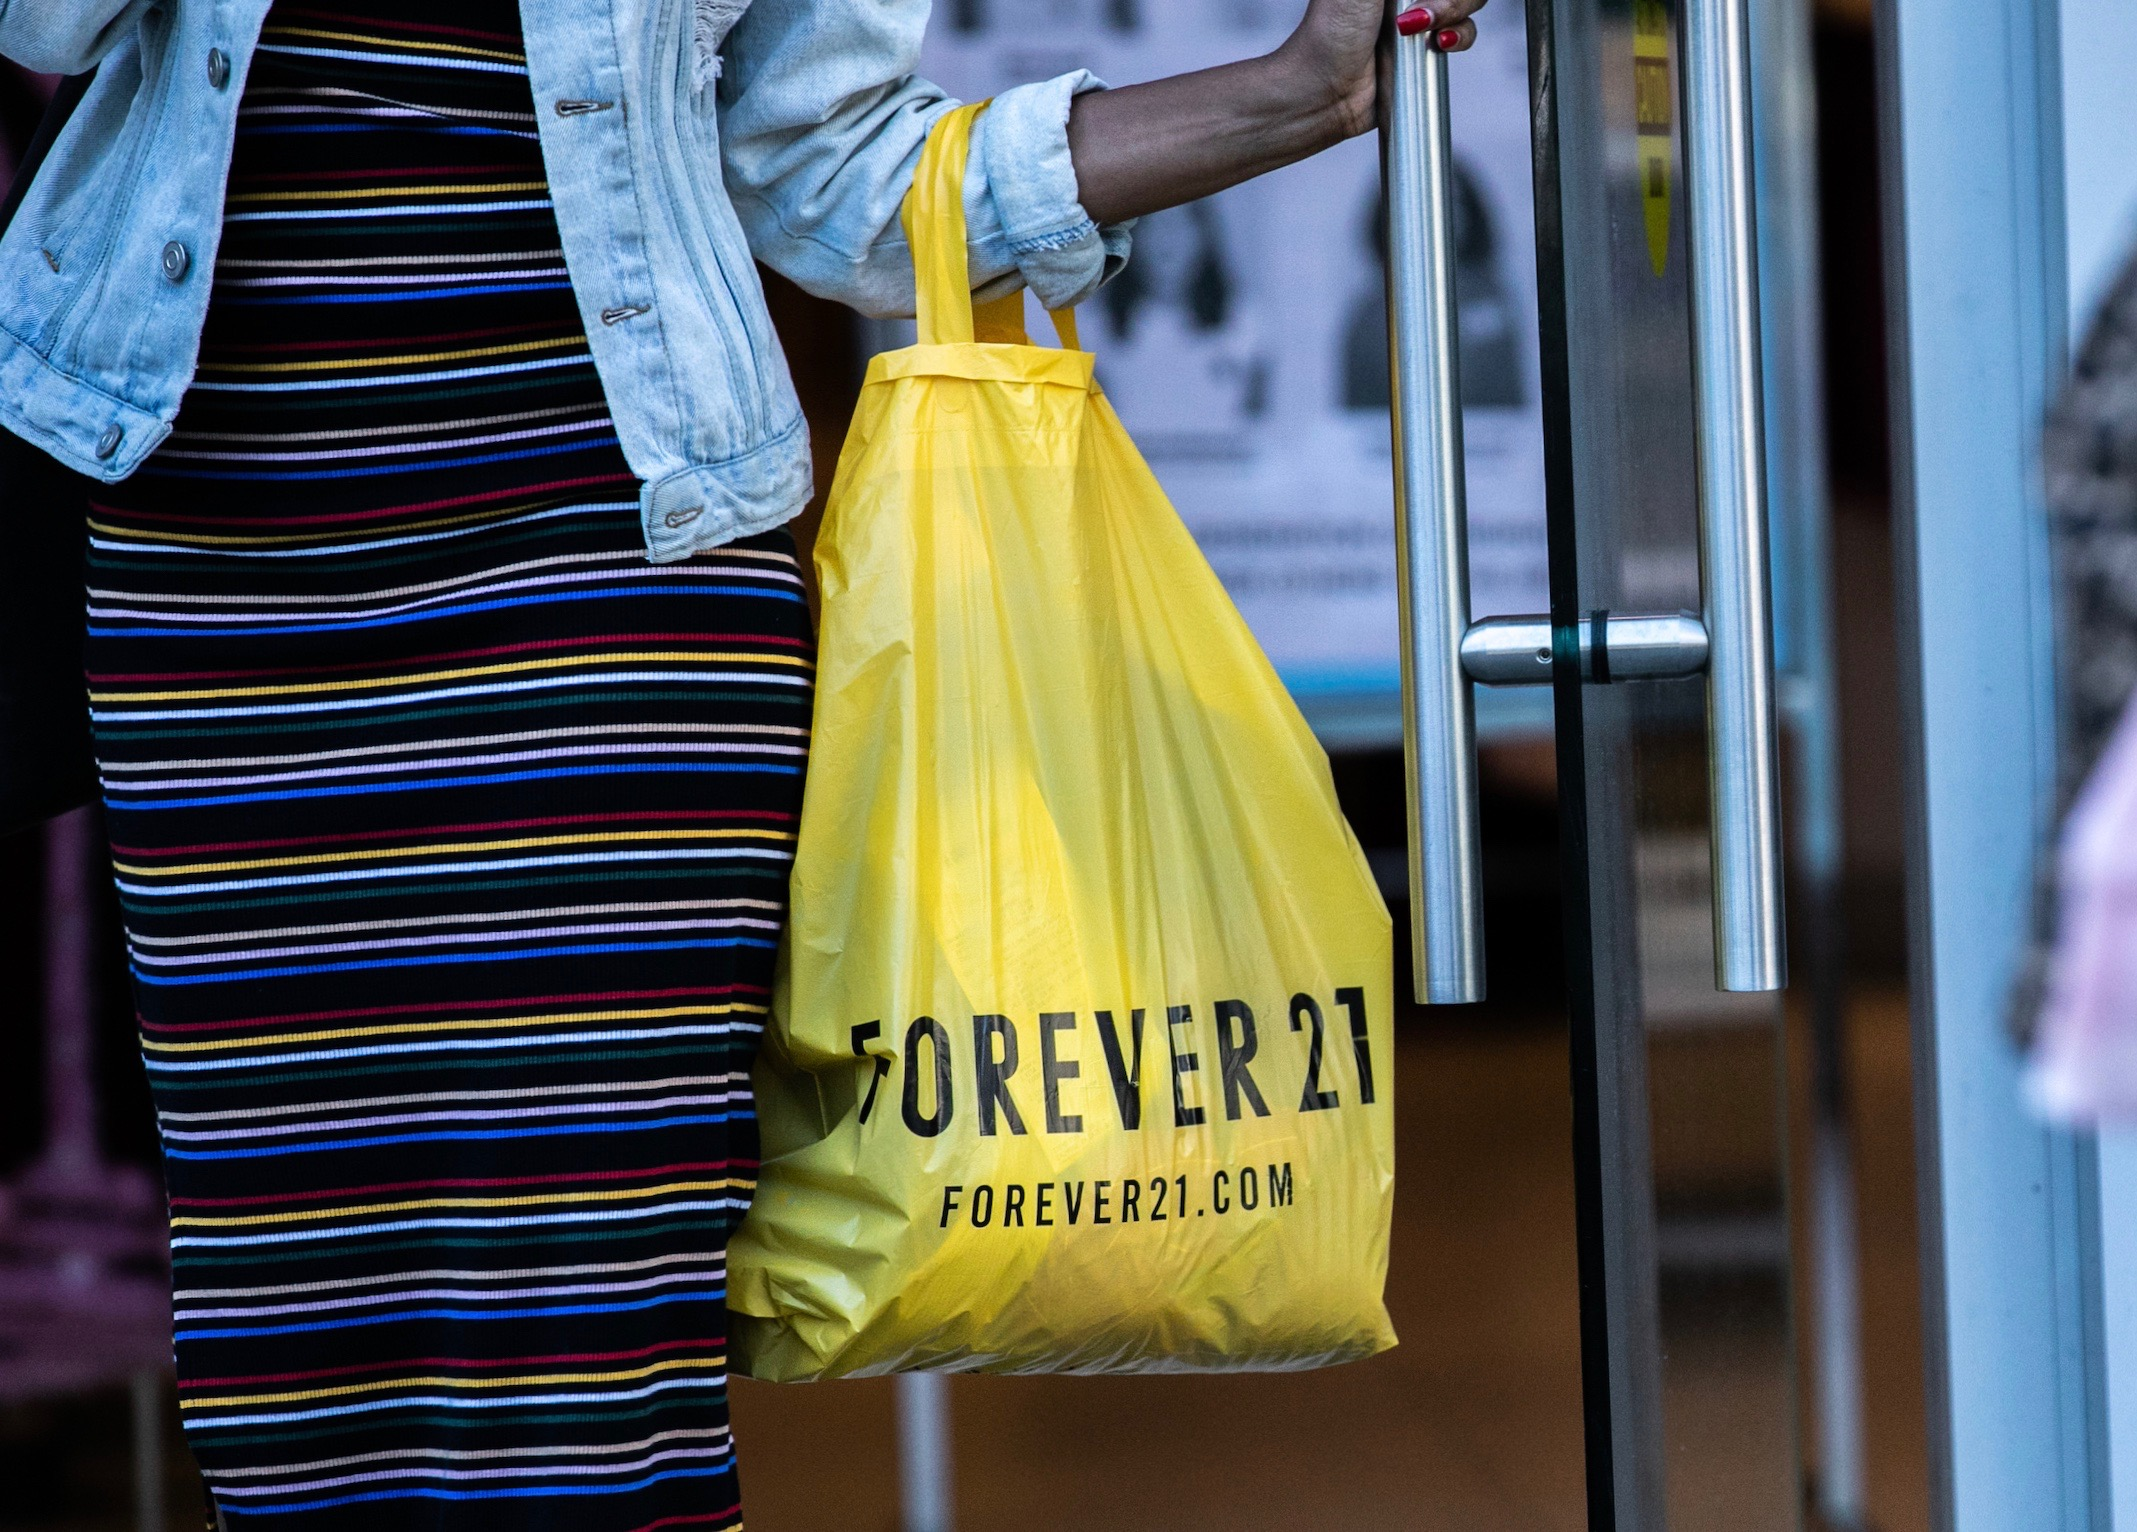 Forever 21 locations As Clothing Store Plans Potential Bankruptcy